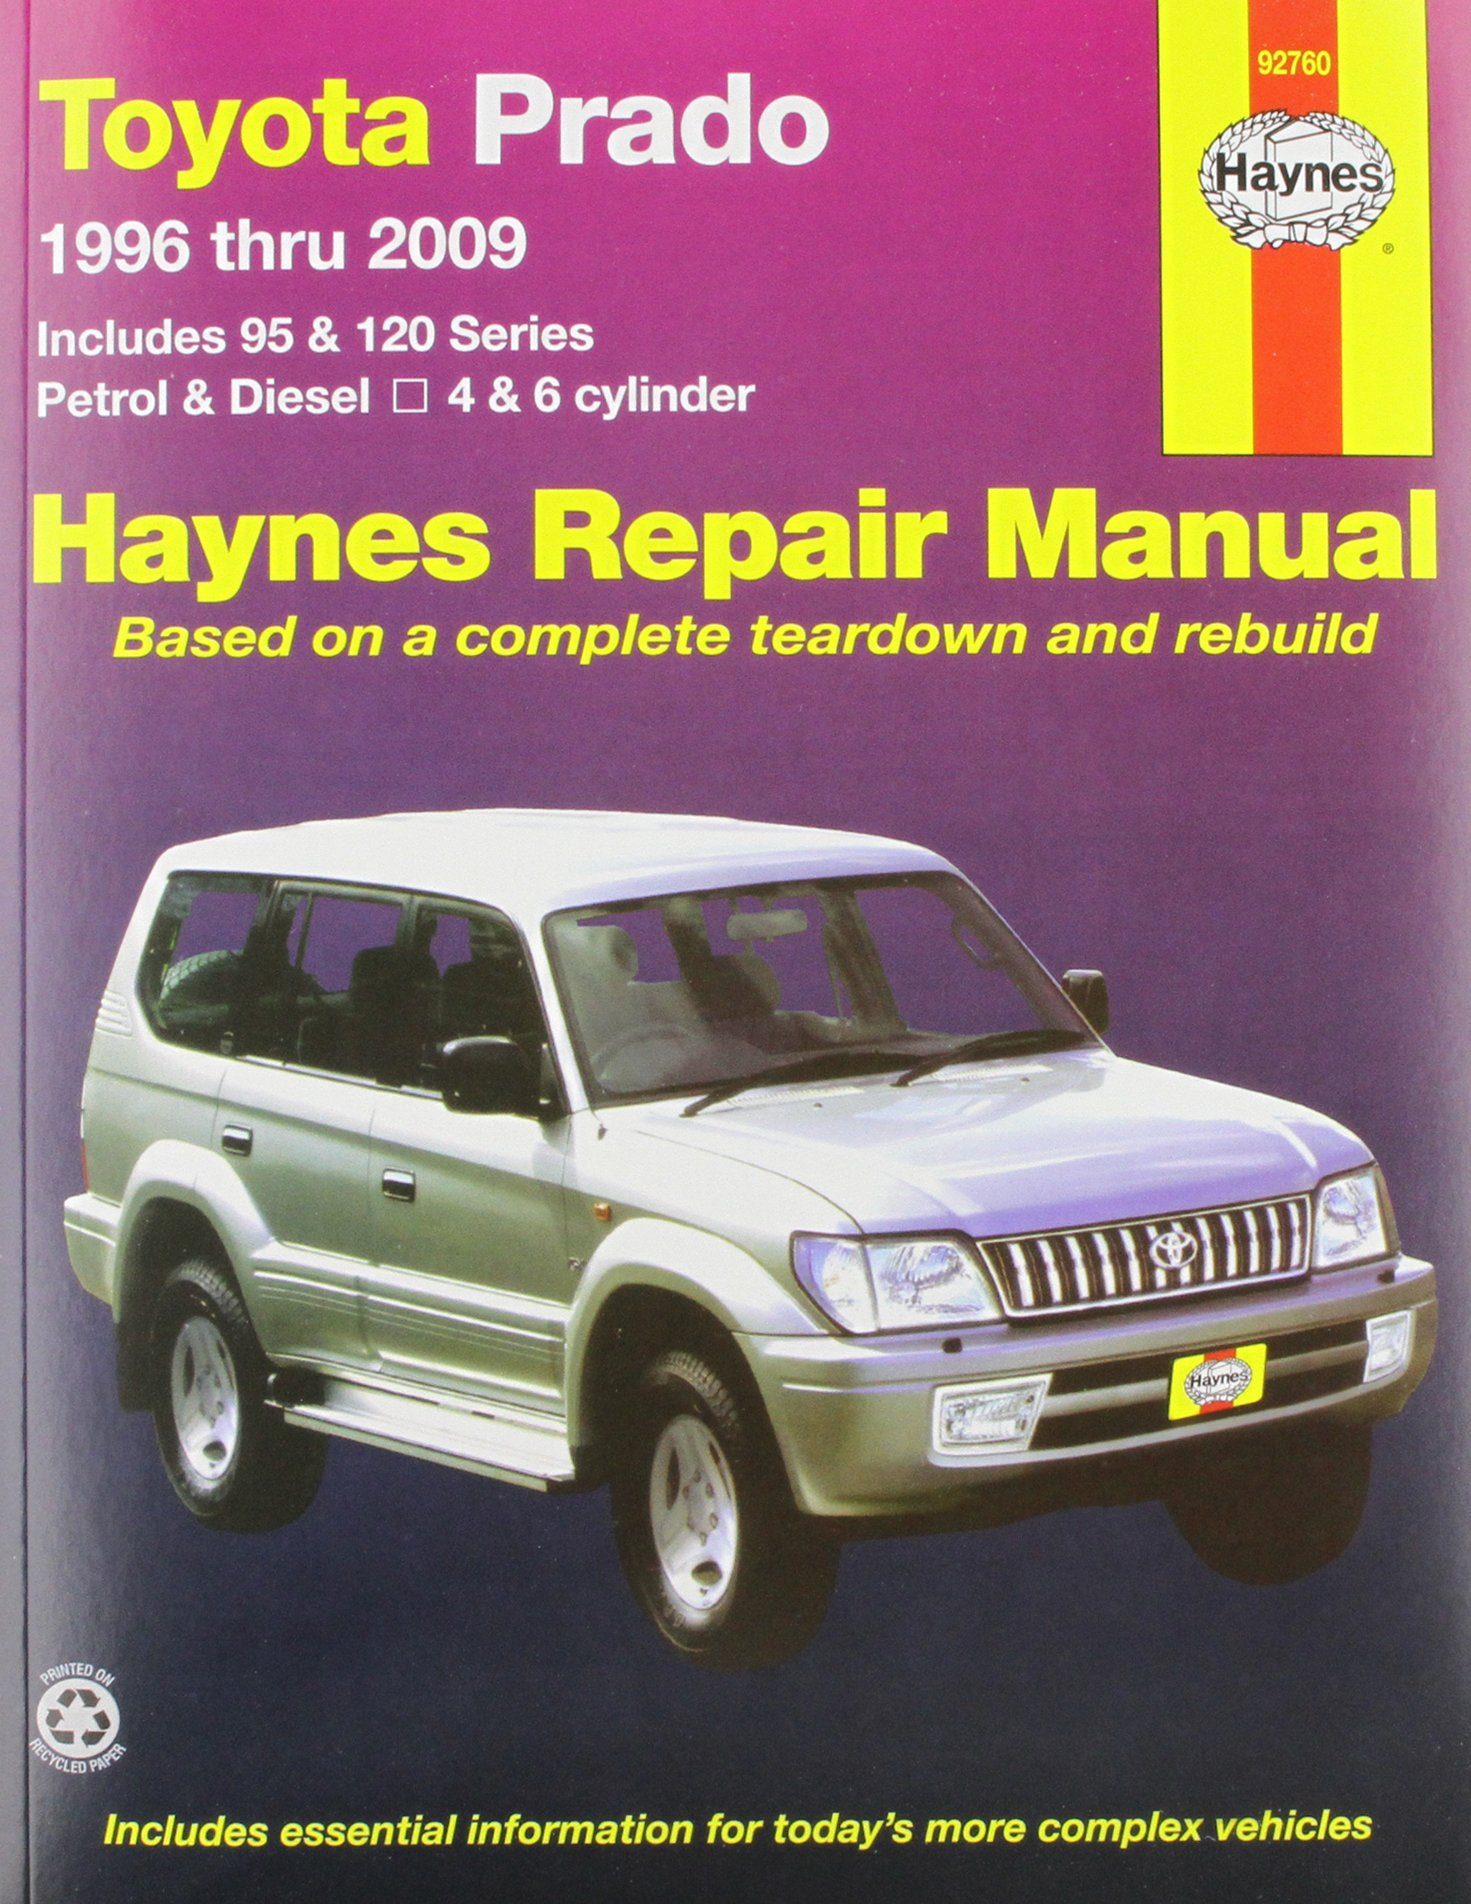 Toyota Prado (96 - 09) (Haynes Service and Repair Manu): Amazon.co.uk:  Haynes Publishing: 9781563928215: Books